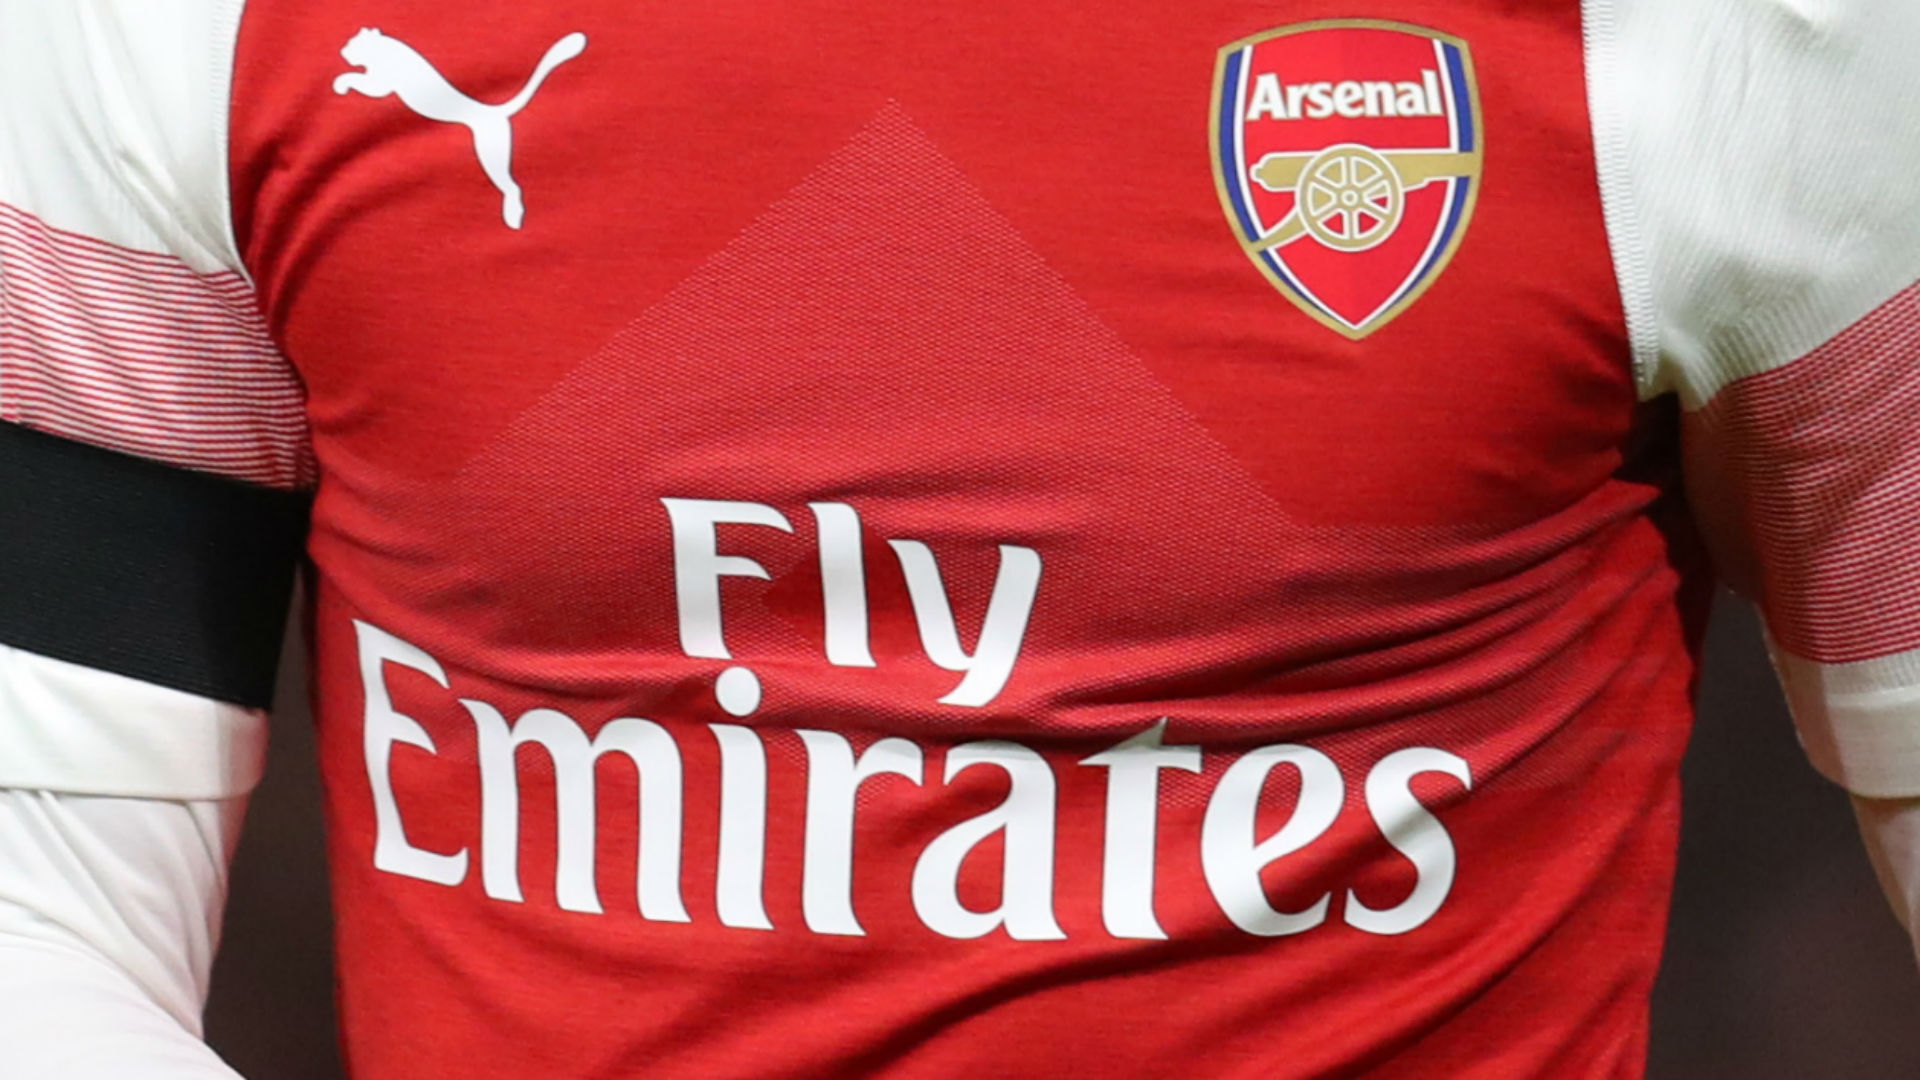 Arsenal Fly Emirates